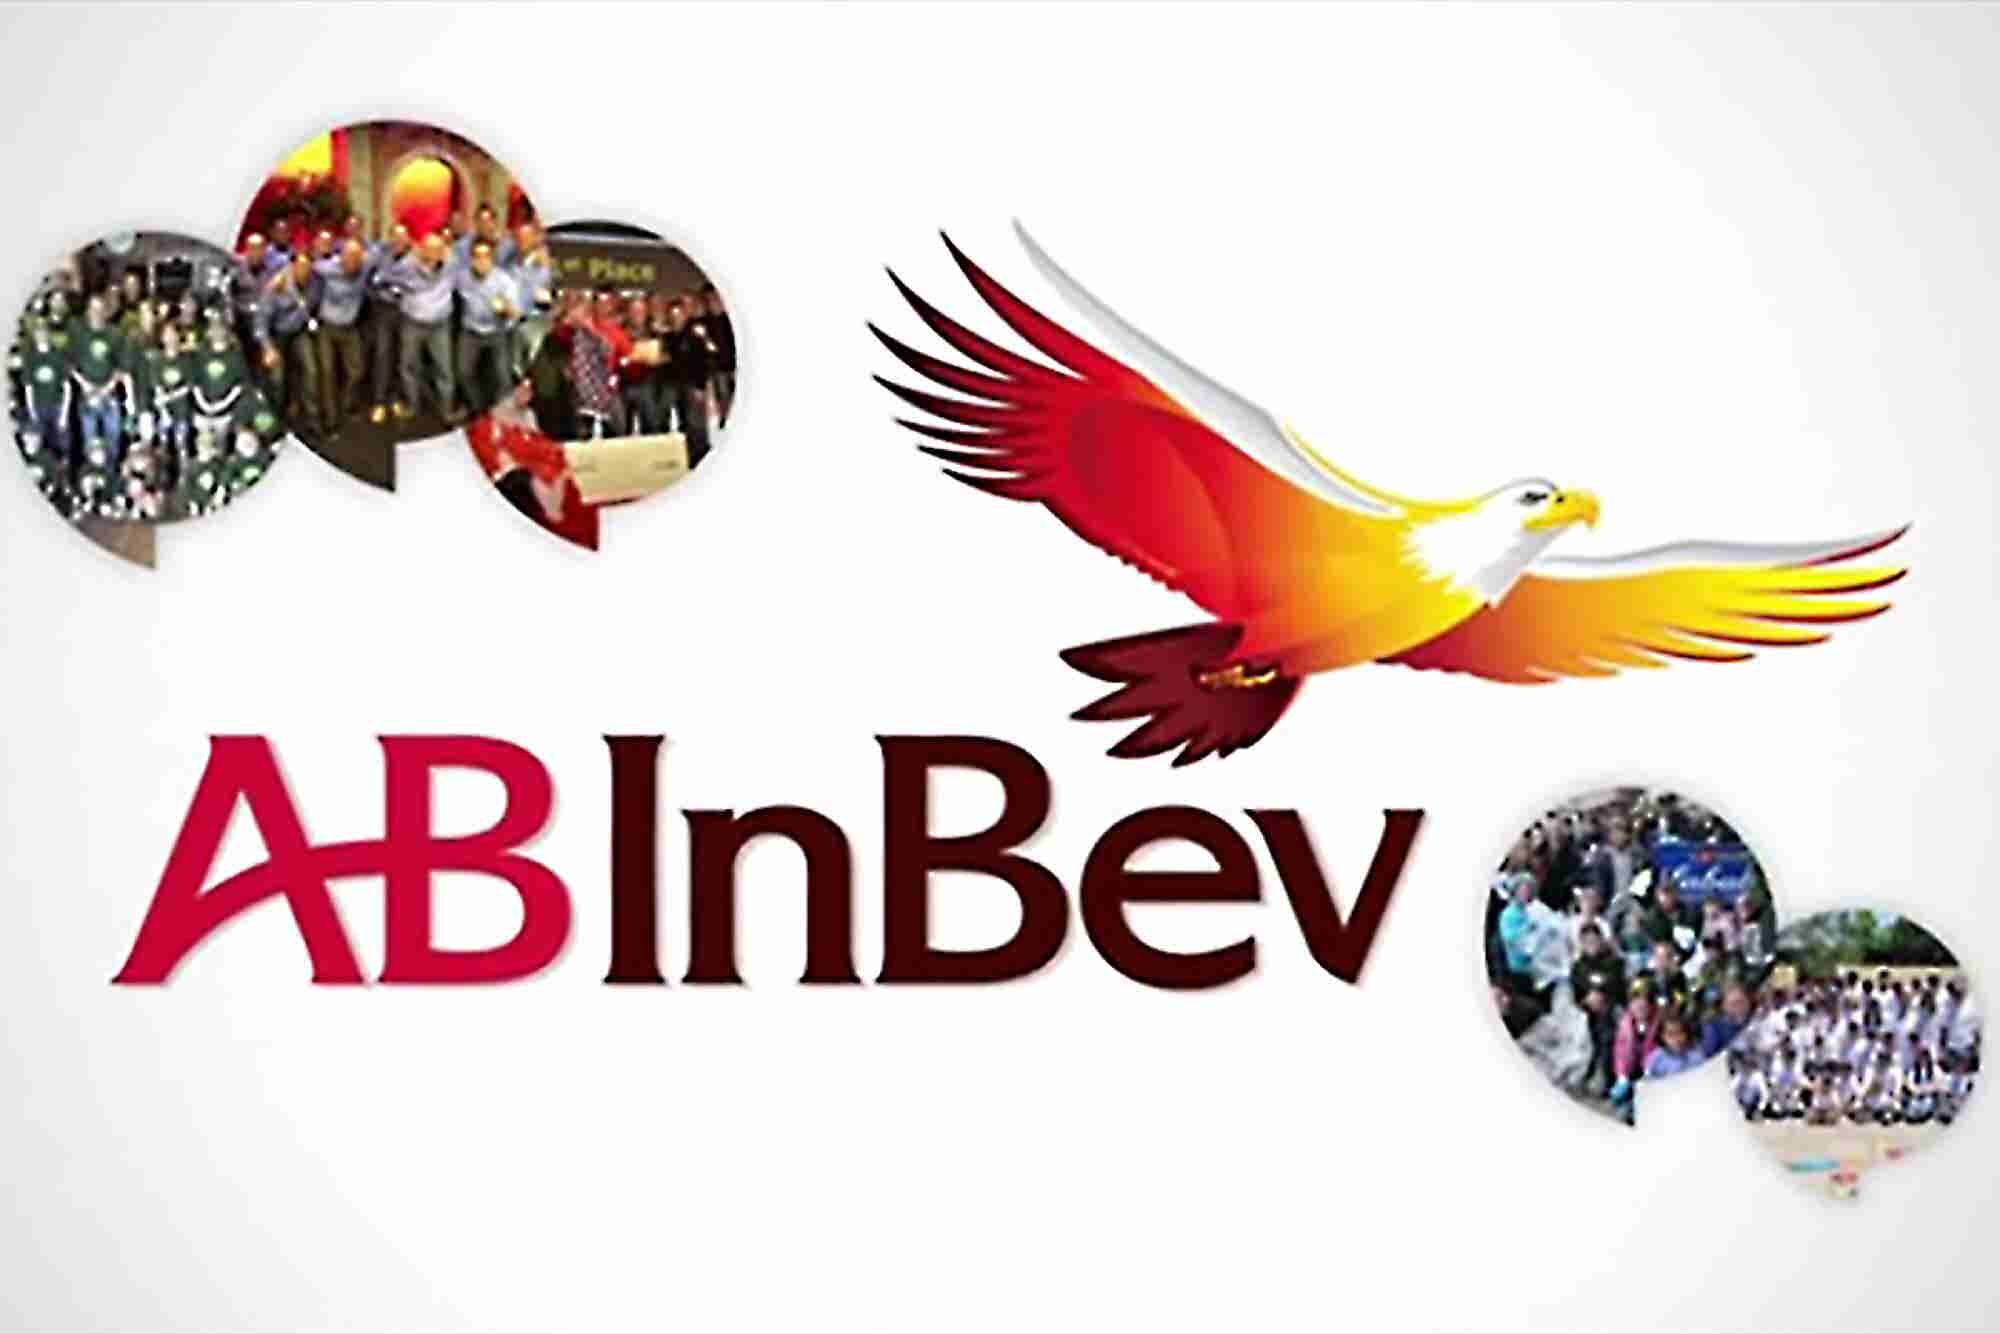 Drink Up: 10 Leadership Lessons From the CEO of Anheuser-Busch InBev